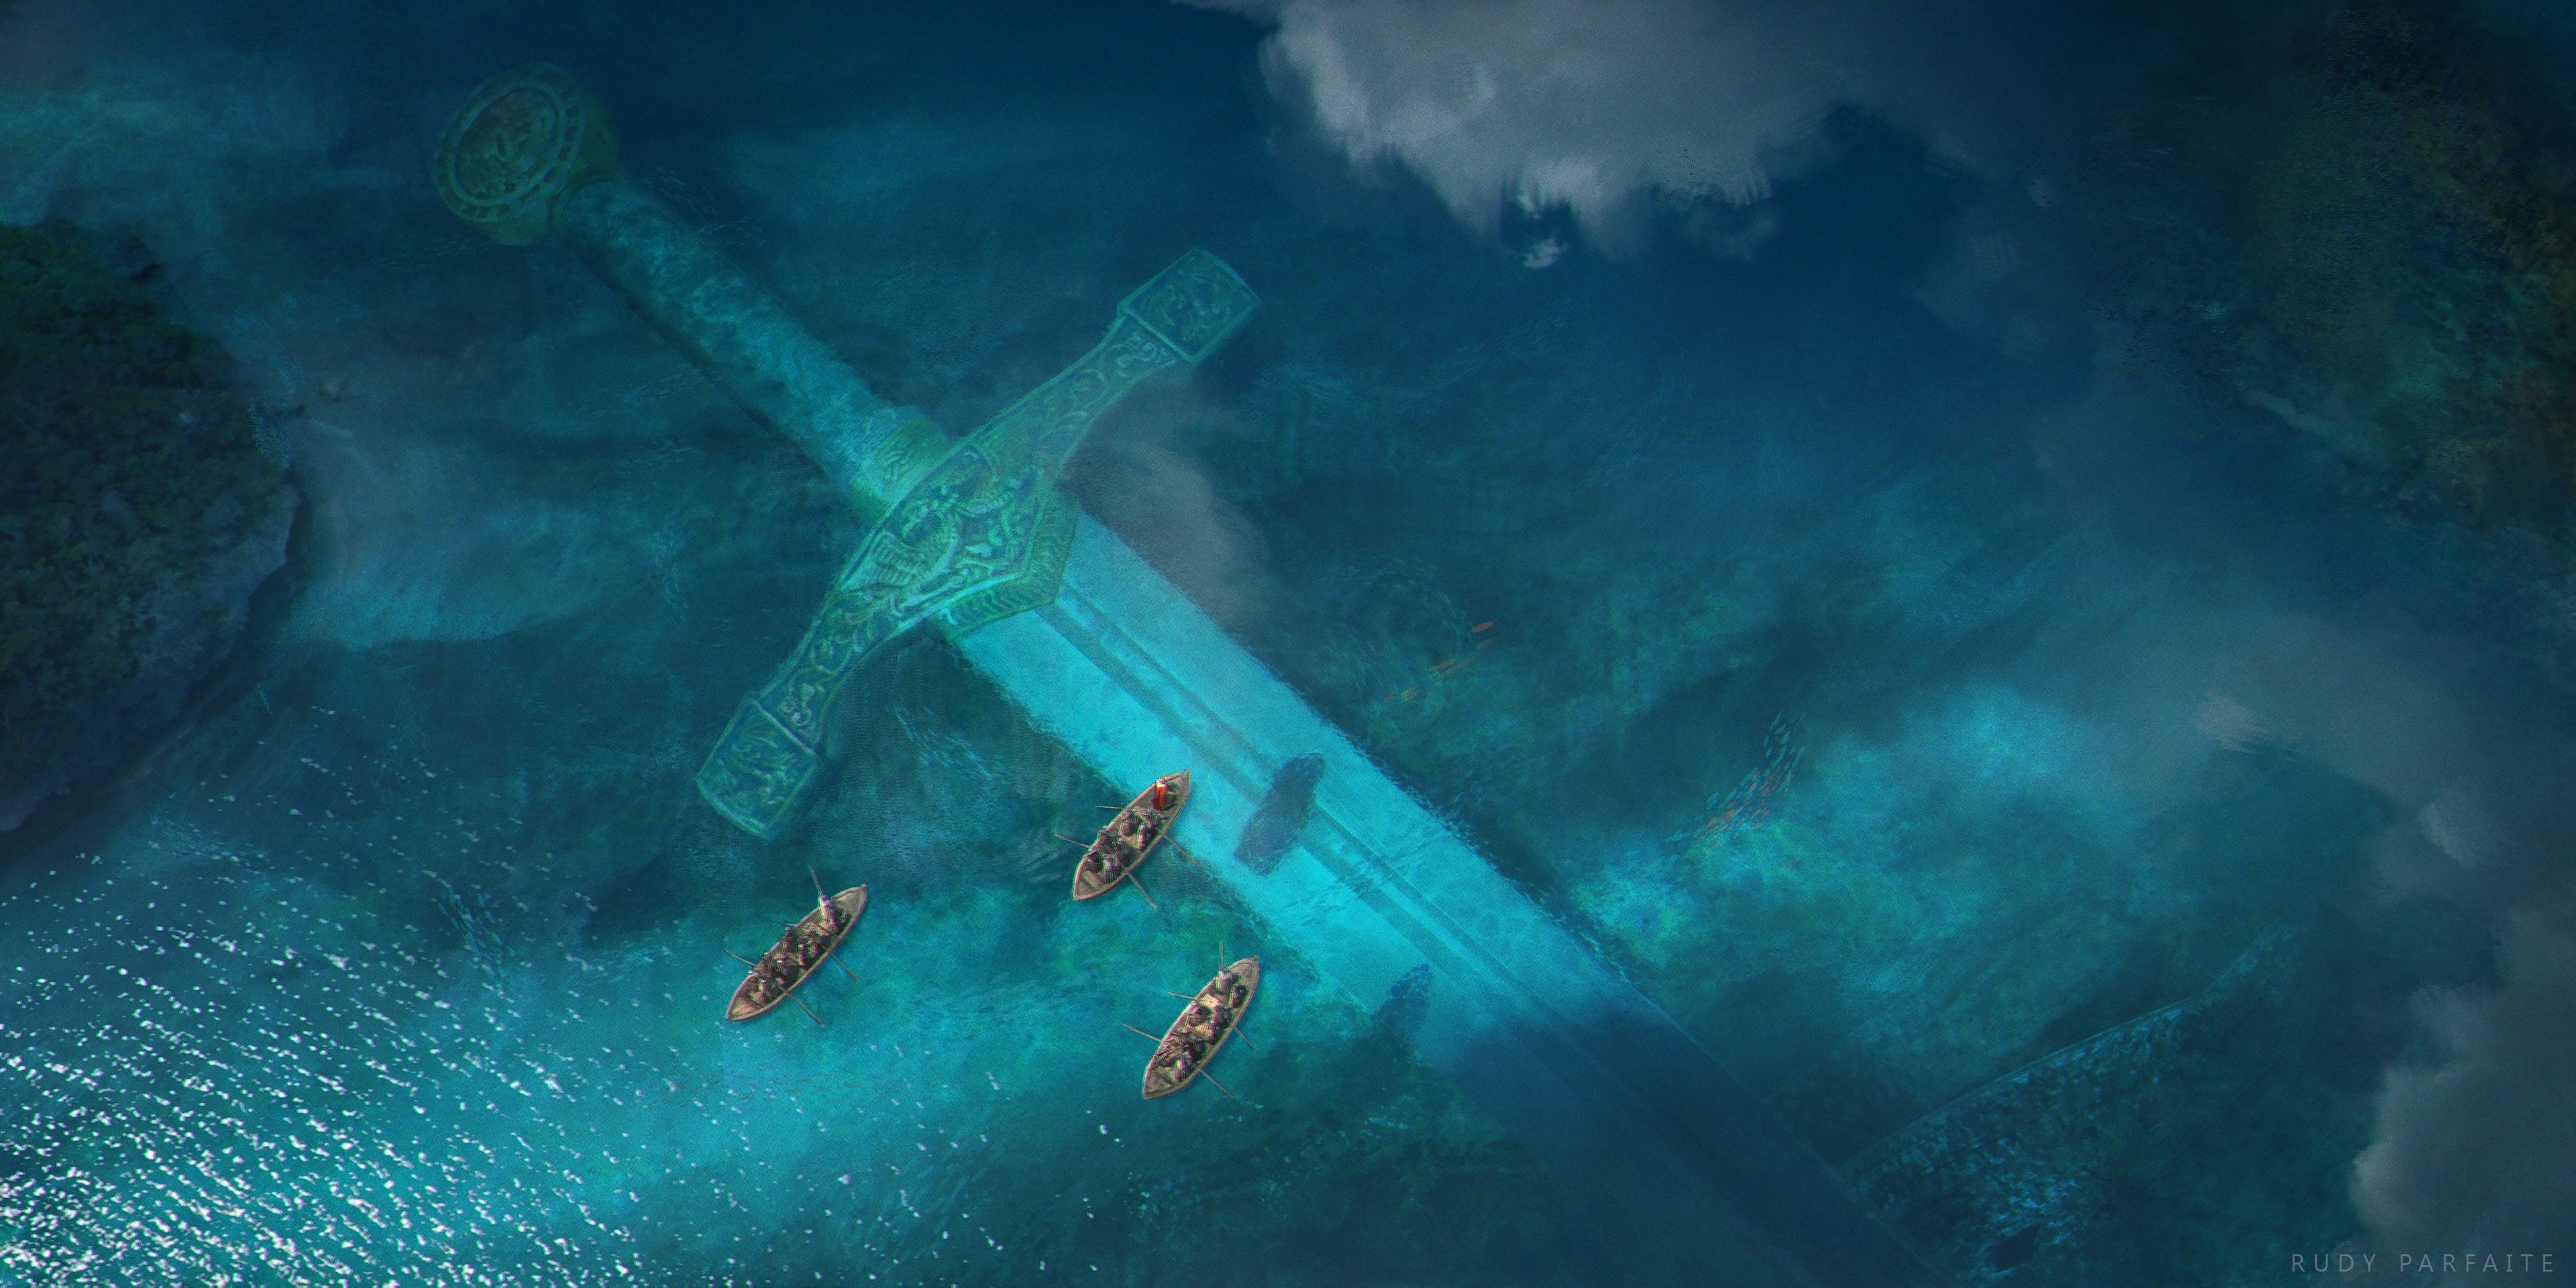 General 3840x1920 water canoes Rudy Parfaite turquoise boat sword watermarked